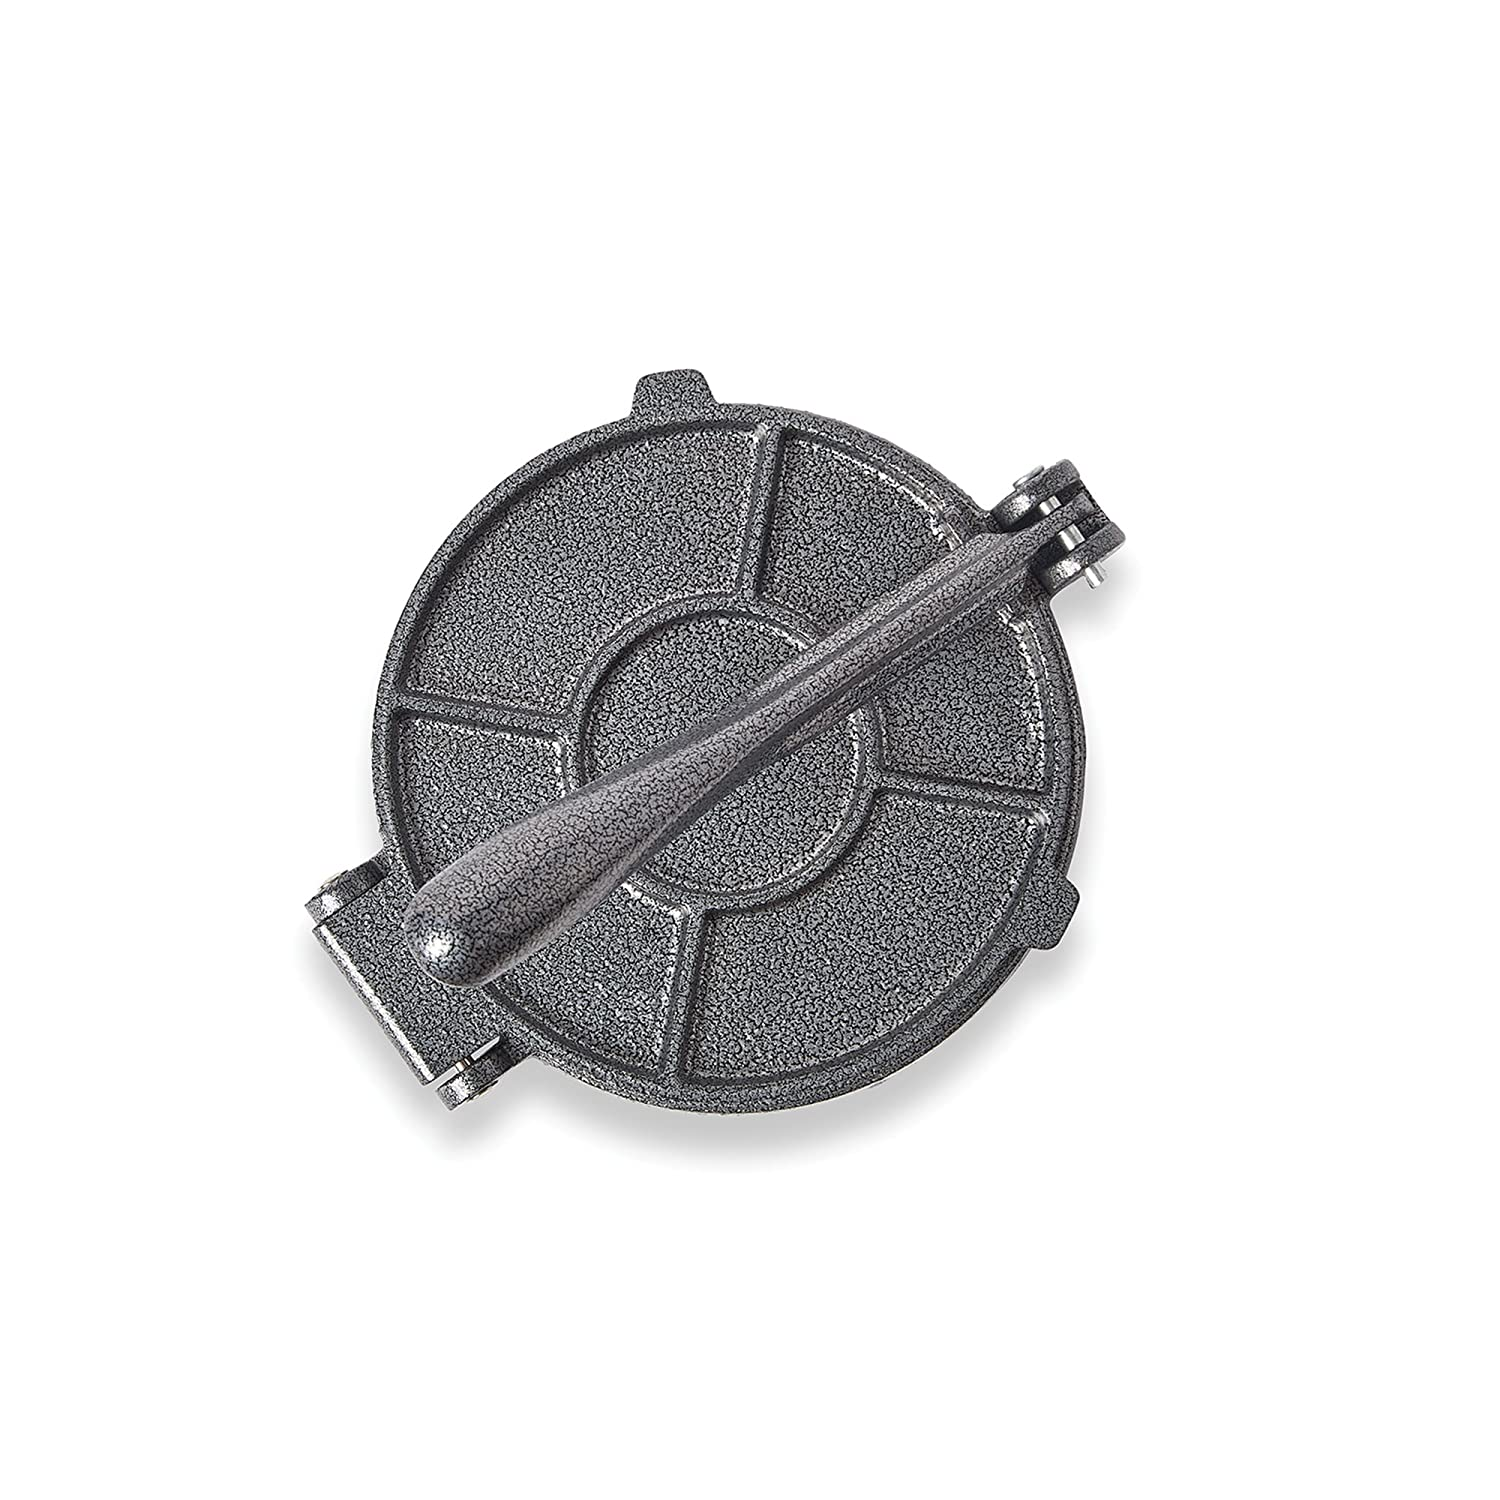 Fox Run Cast Iron Tortilla Press, 7.25 Diameter 5942